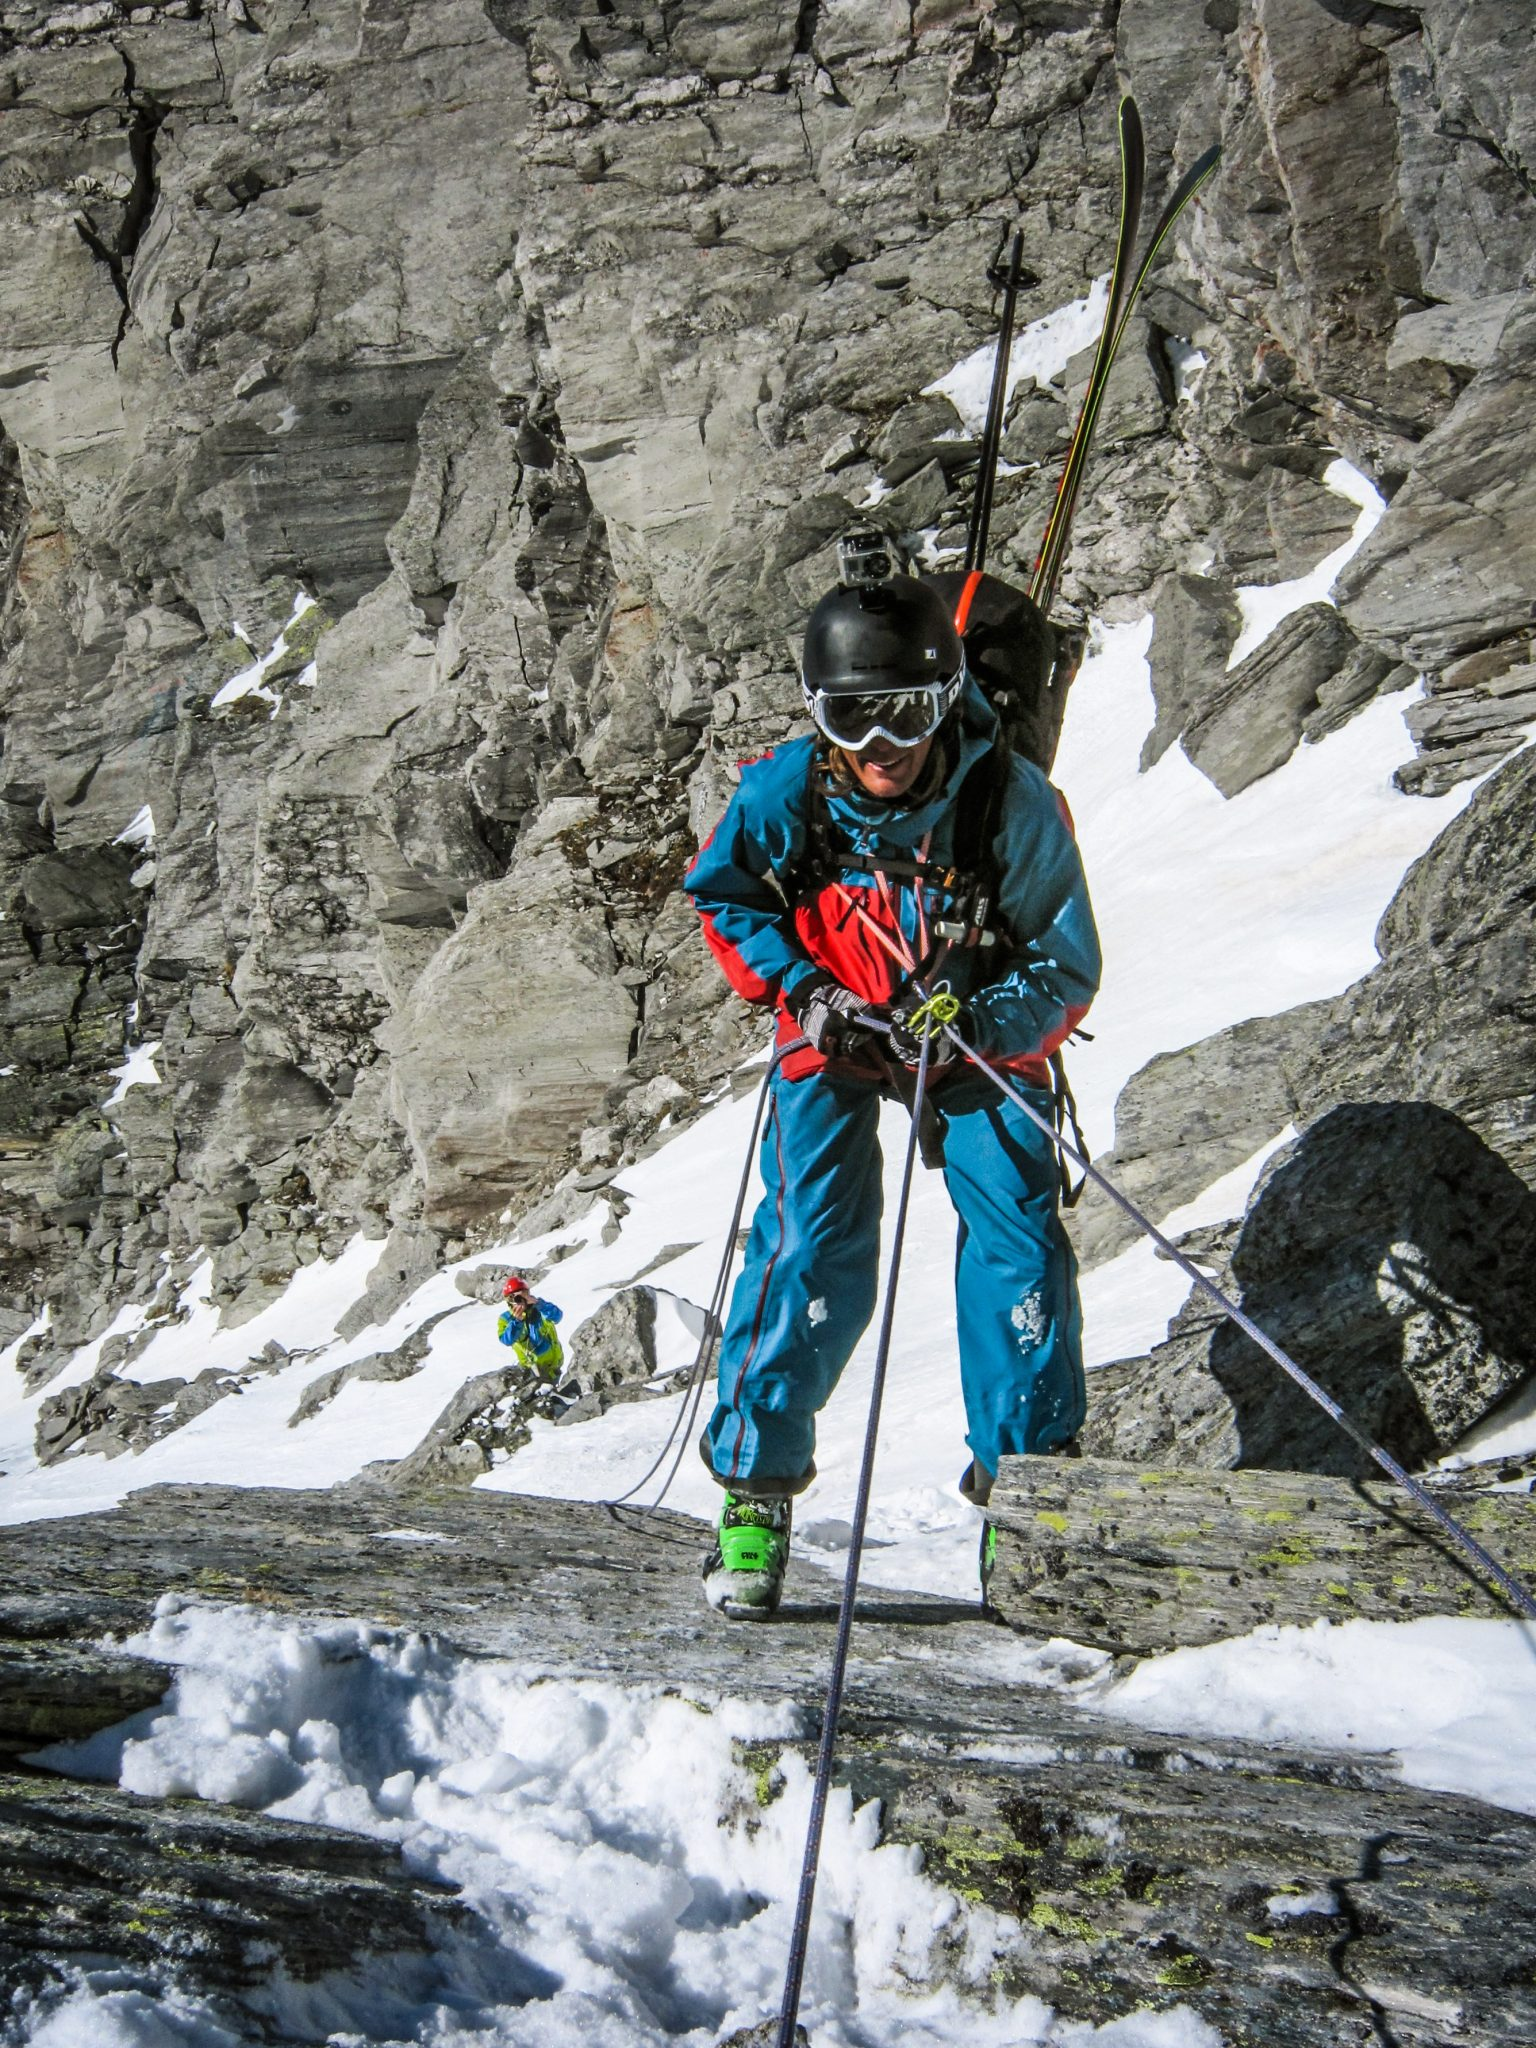 Taneli's first short rappel into the Tuxer Banana couloir using a makeshift harness made of two simple slings.